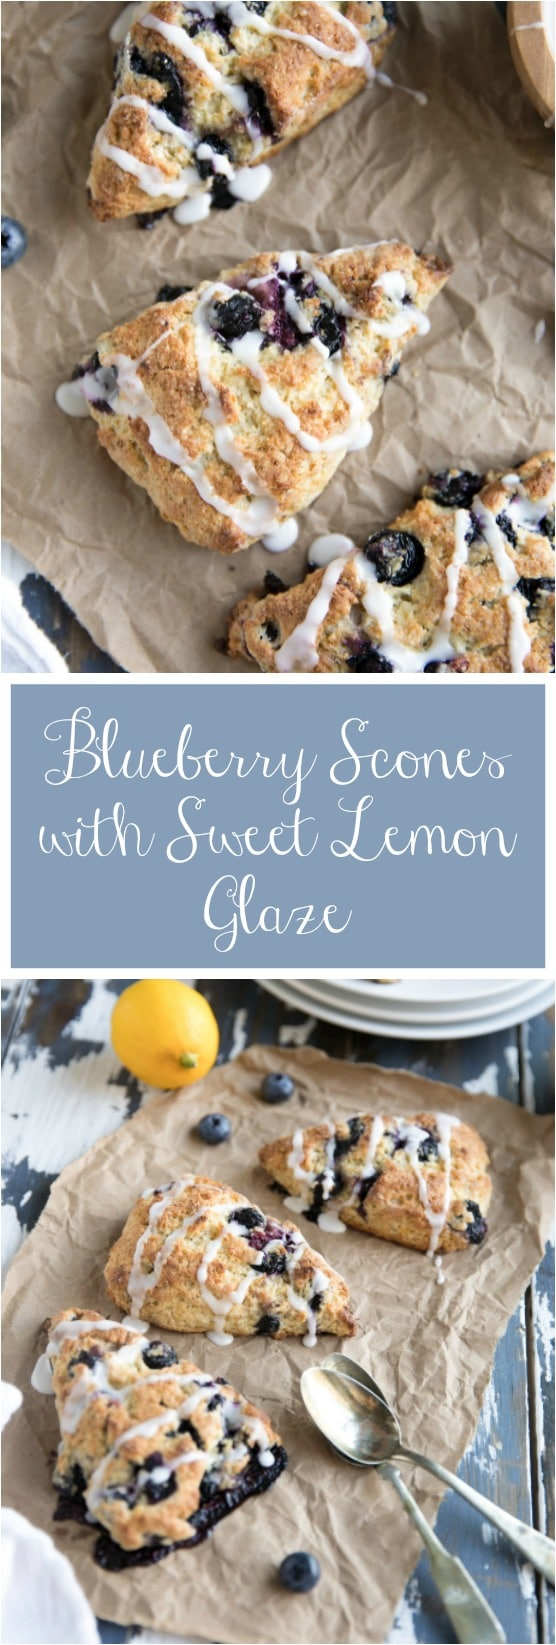 Blueberry Scones with Lemon Glaze via @theforkedspoon #snones #breakfast #blueberries #lemon #pastry #brunch #theforkedspoon